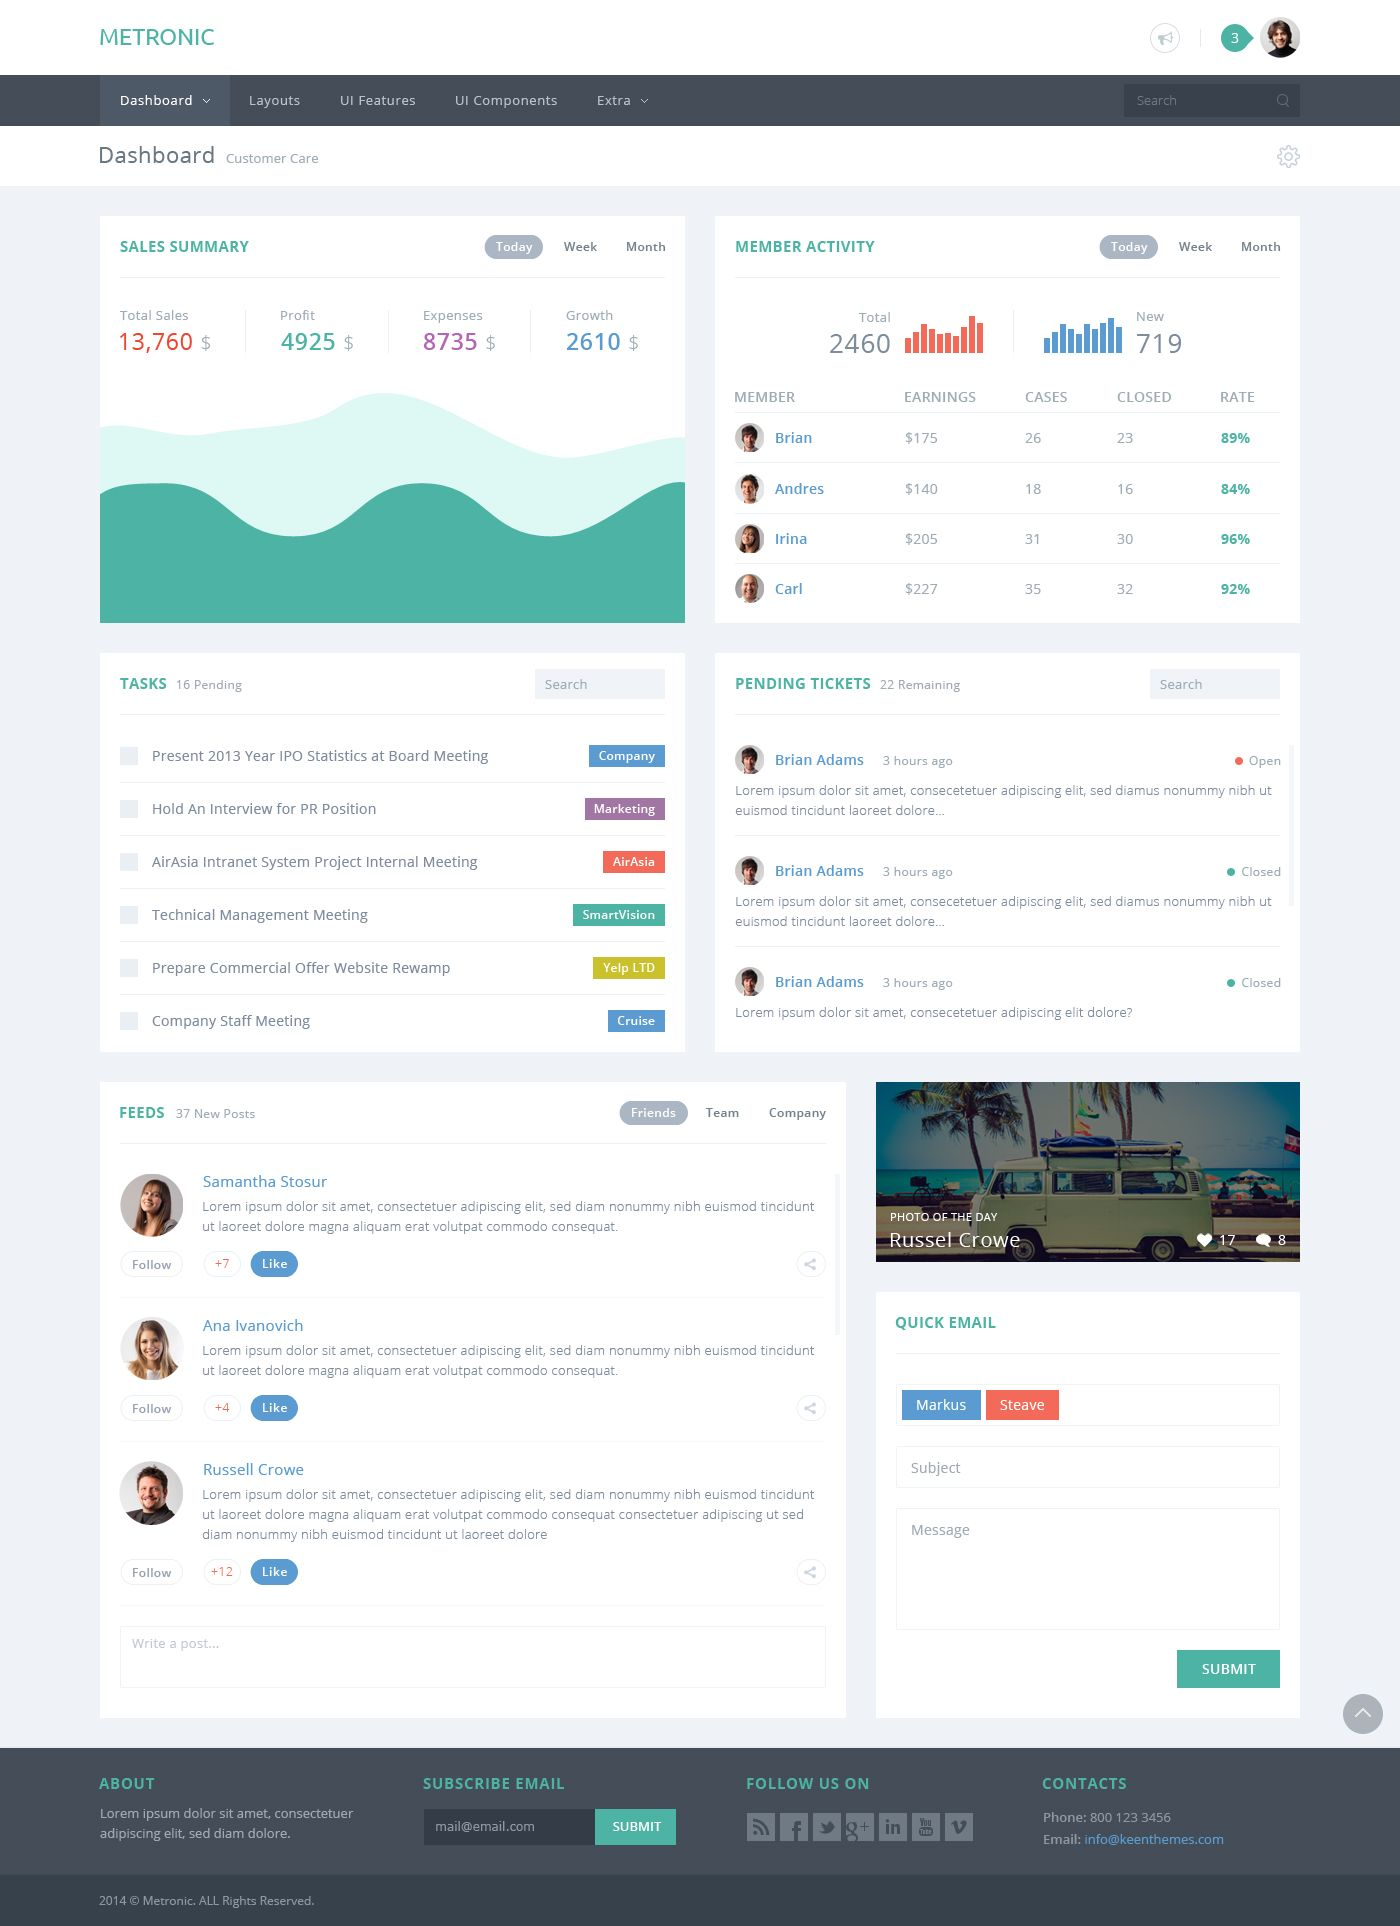 Metronic Template | Metronic Responsive Admin Dashboard Template Download 后台